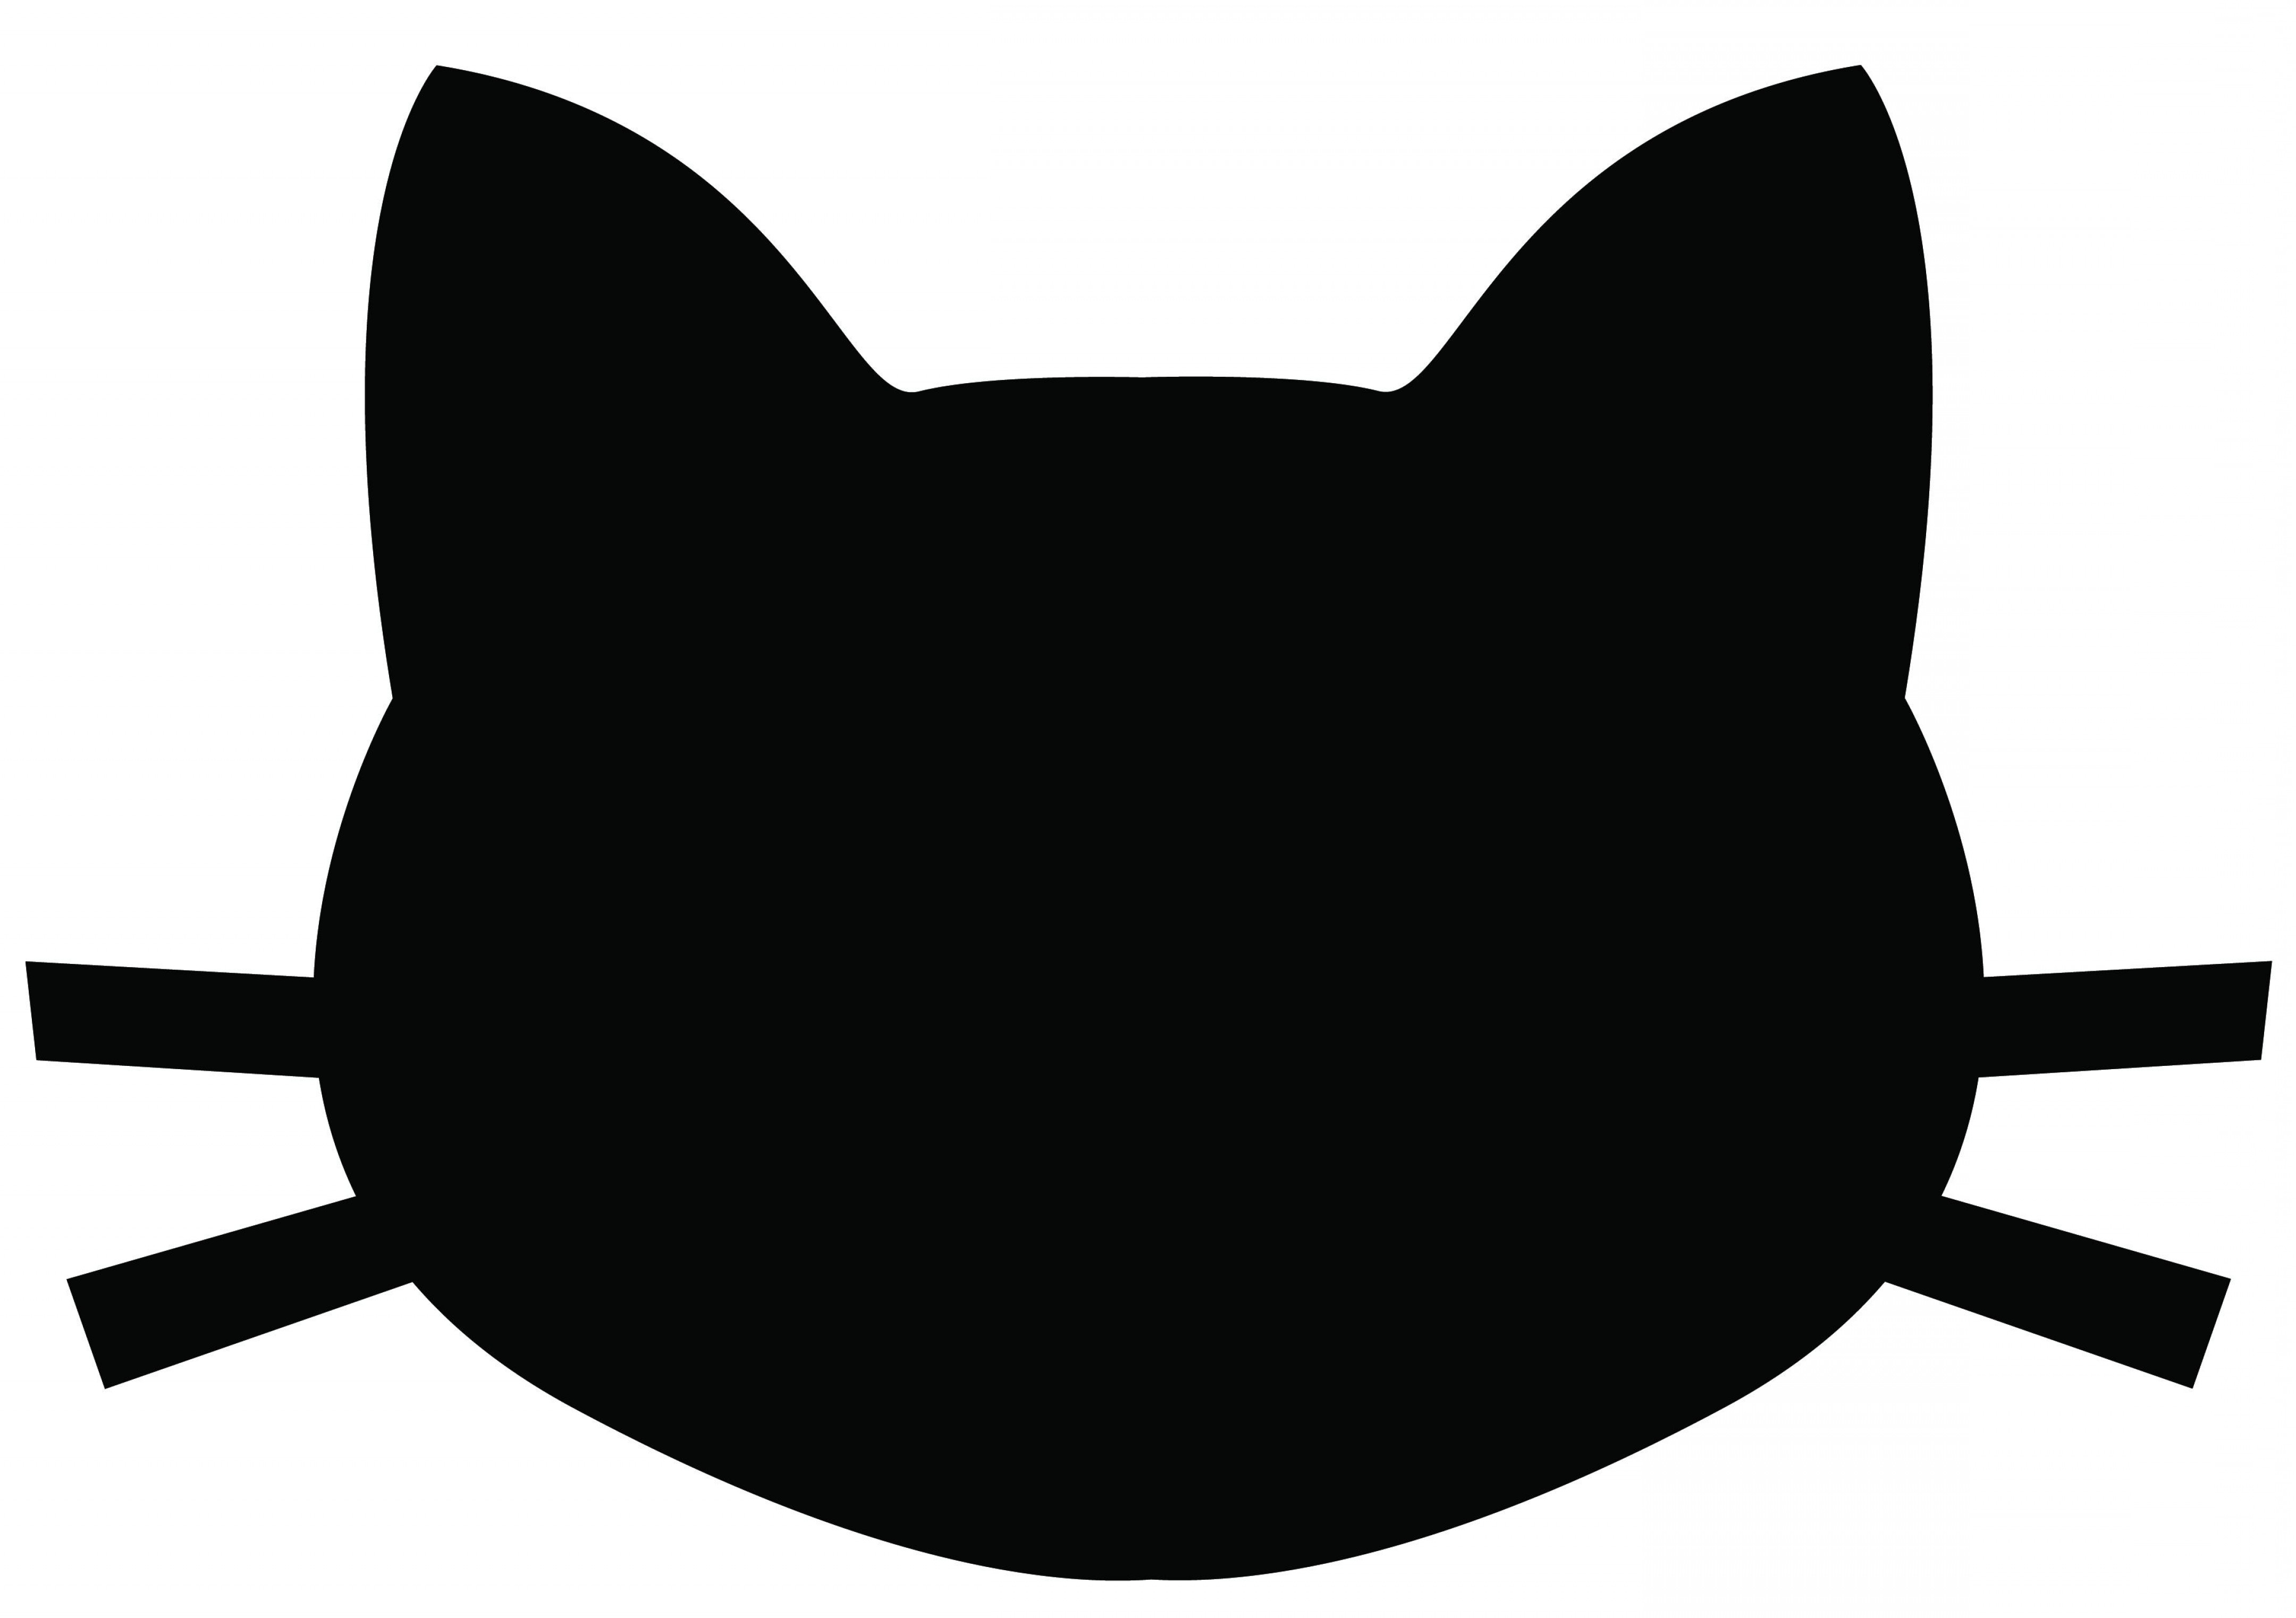 4320x3045 Cheshire Cat Silhouette Vector Arenawp